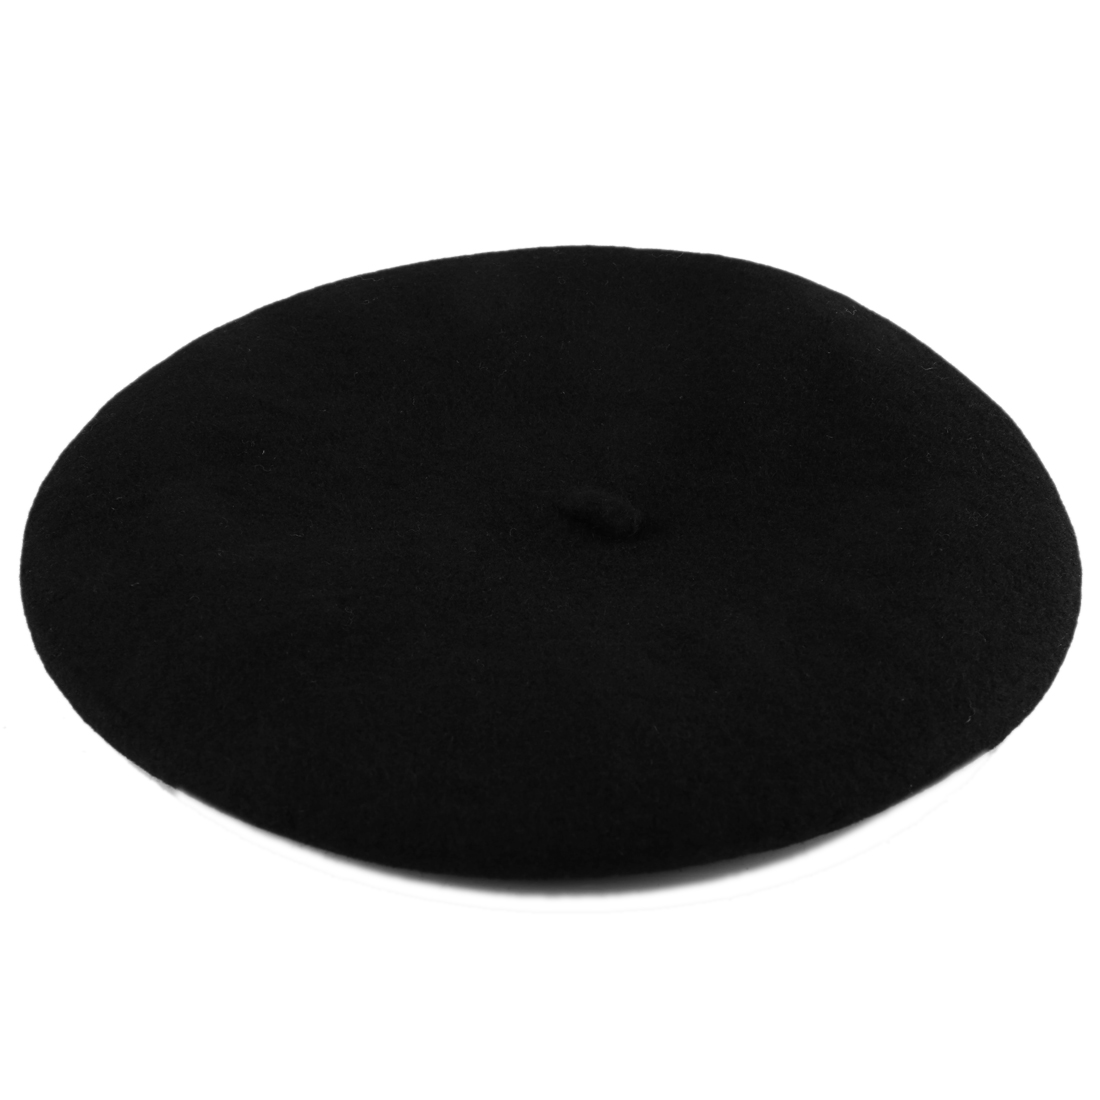 Laides Warm Soft Flexible Wool Classic Style Beret Black